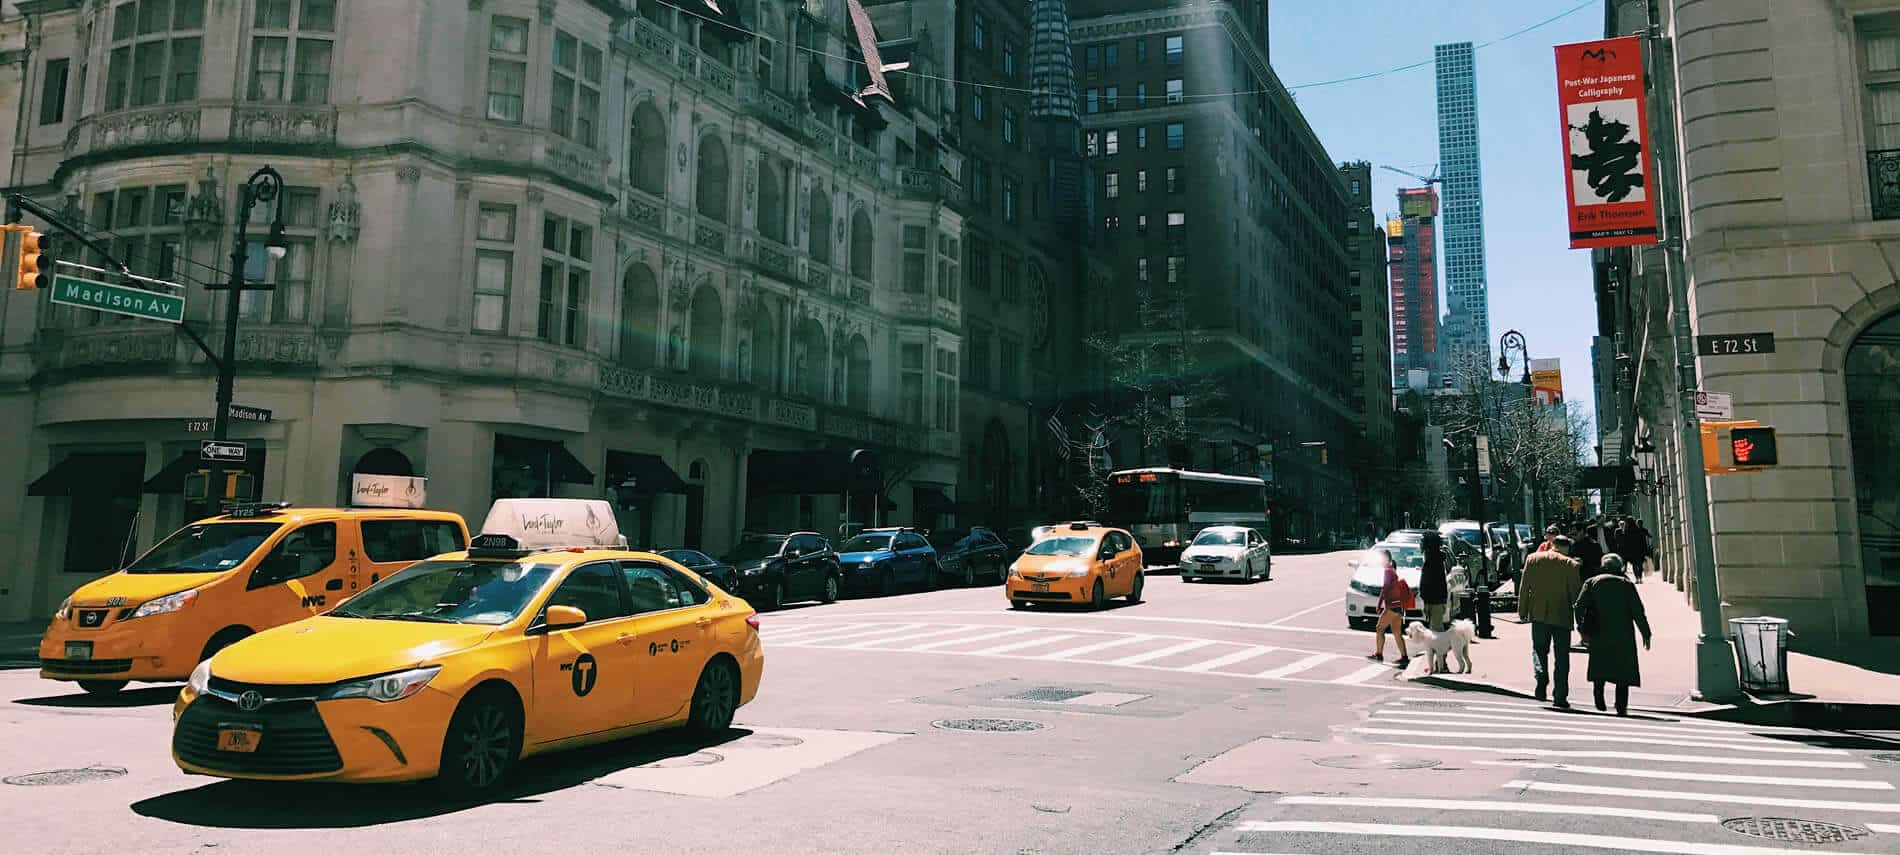 An intersection in New York City with multiple yellow taxis and crossing pedestrians during the day